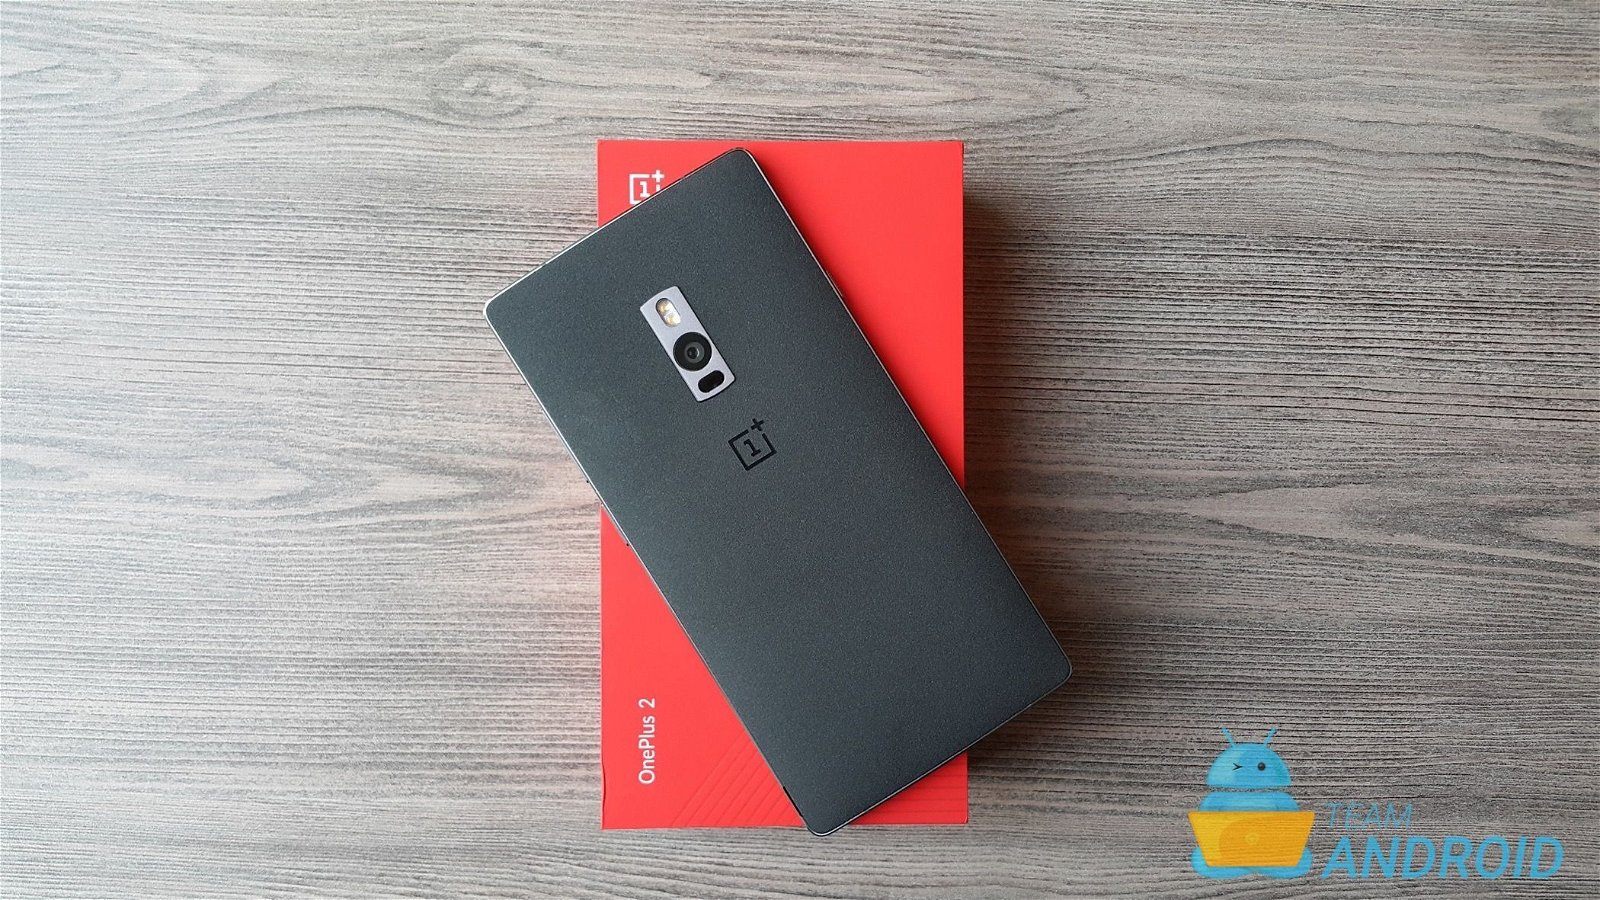 How to Backup EFS on OnePlus 2 - Tutorial / Guide 1